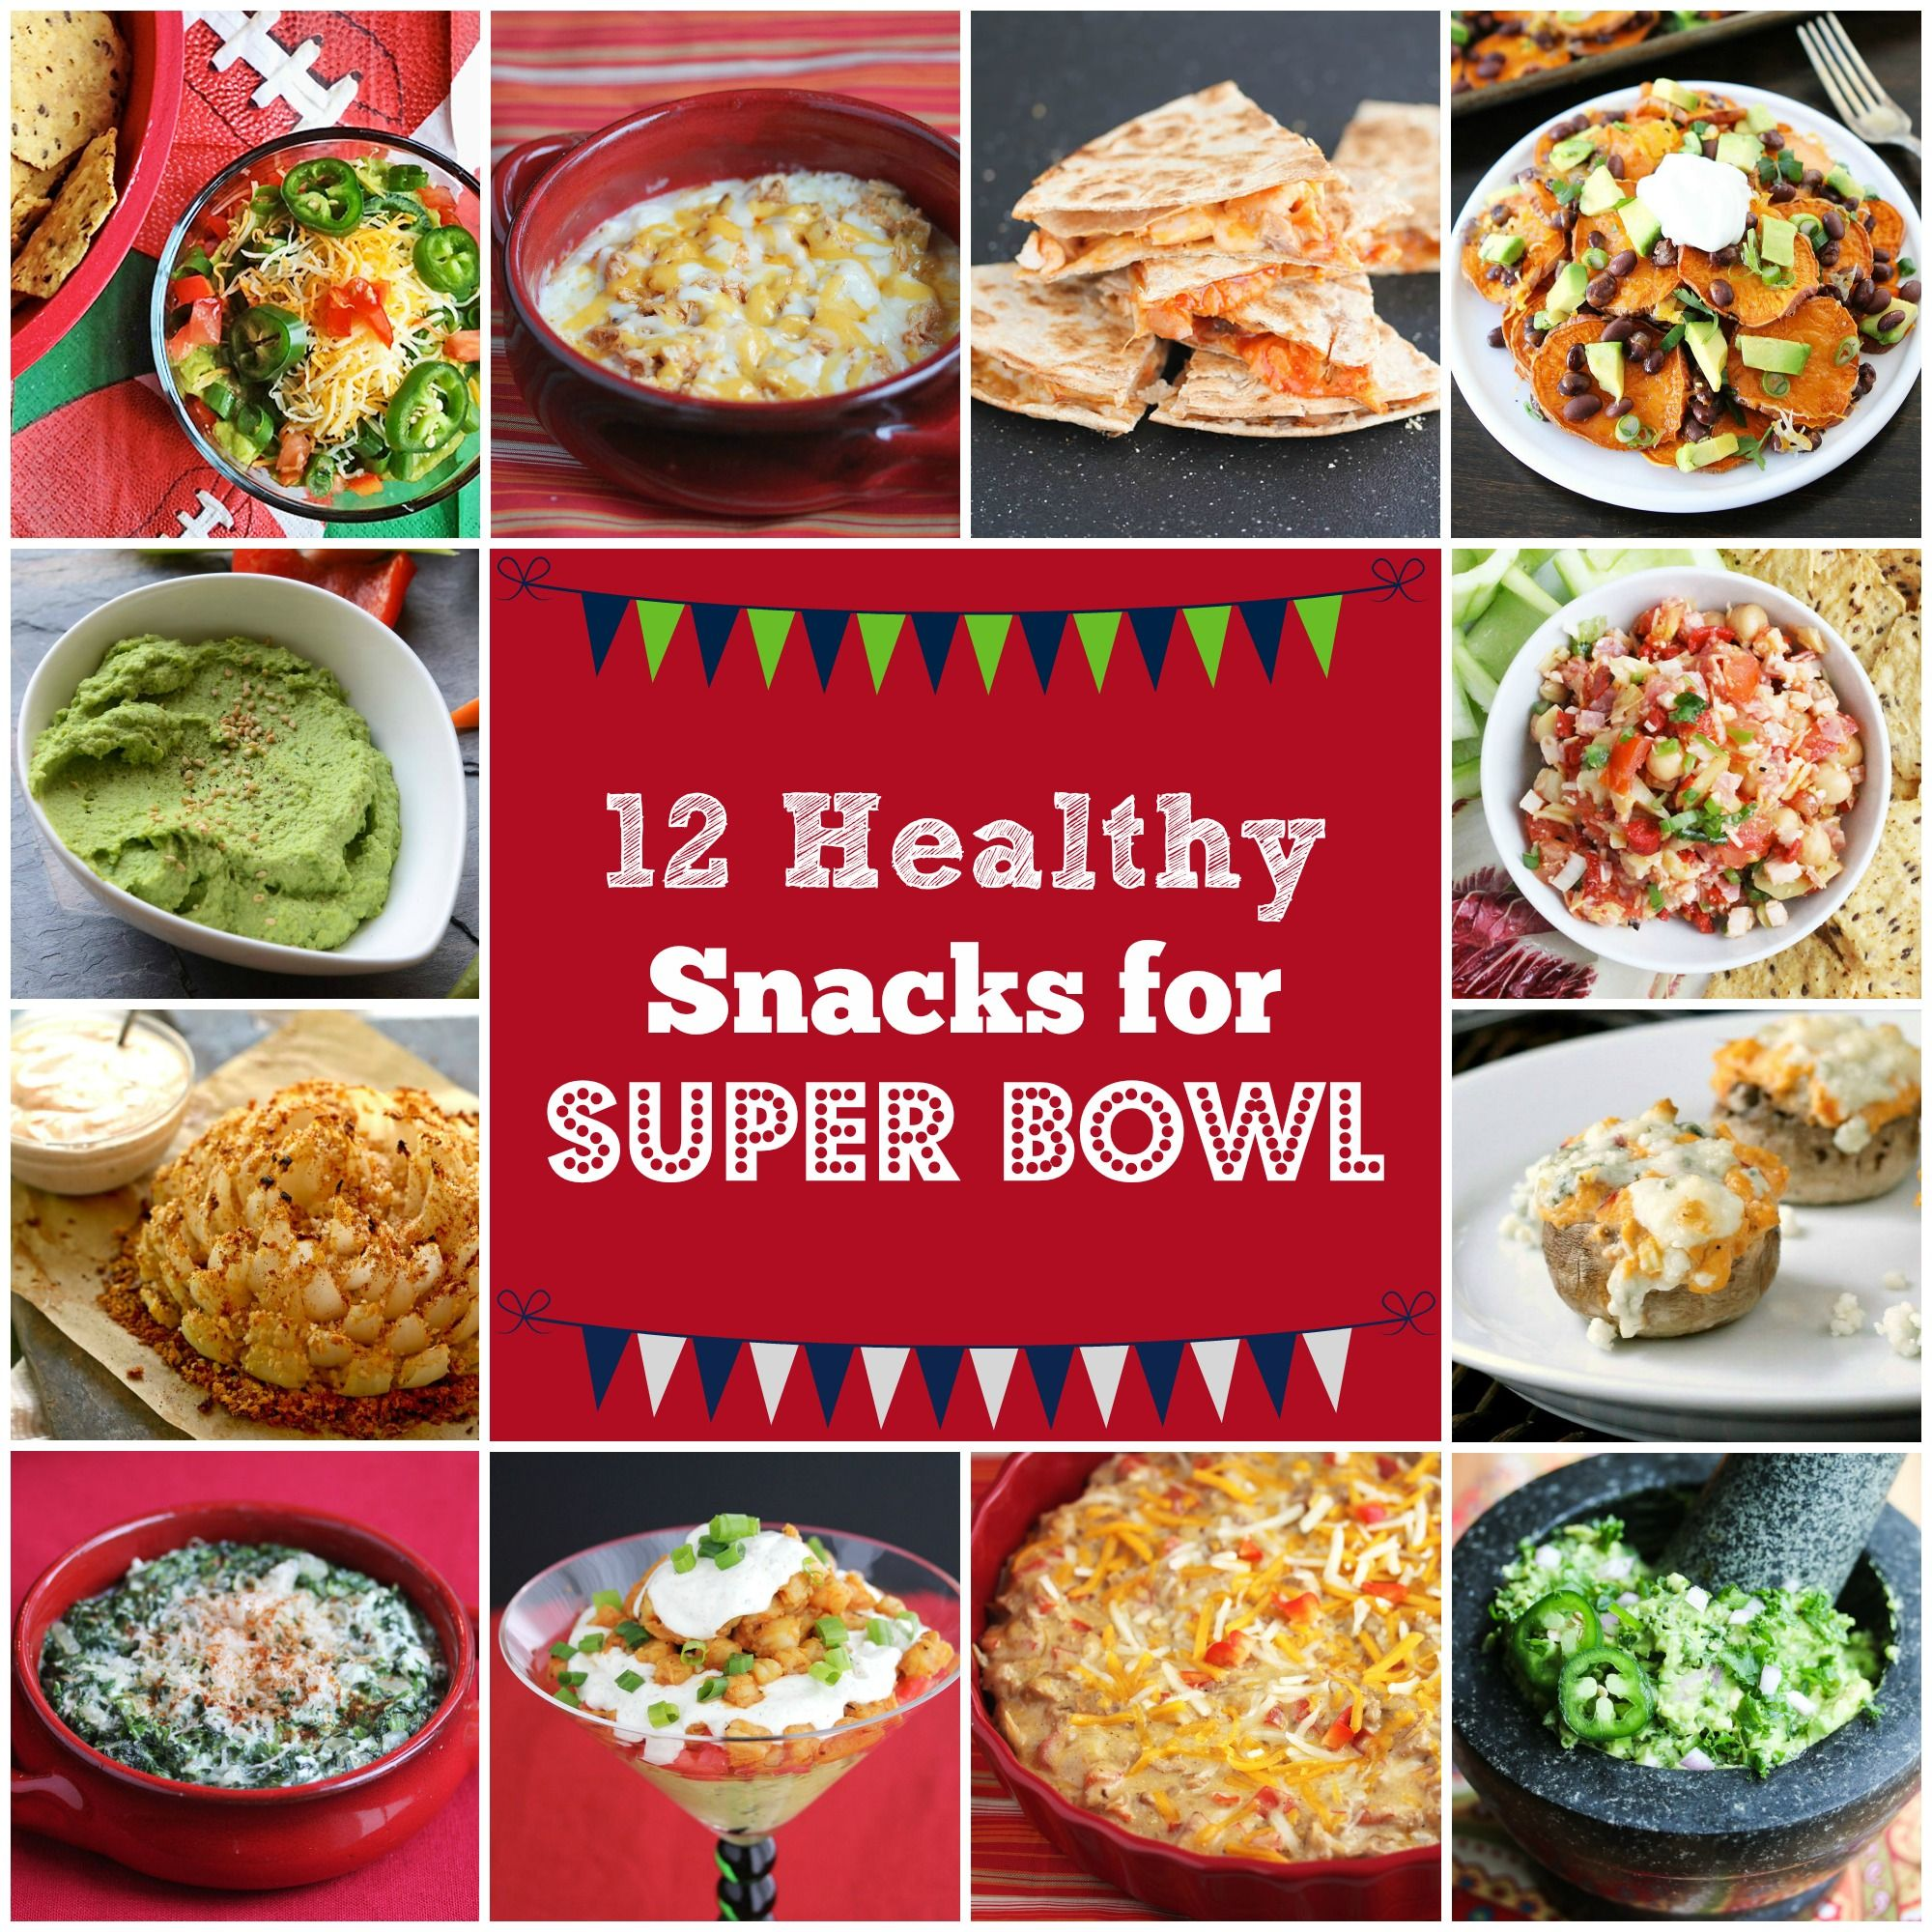 12 healthy super bowl snack recipes super bowl party snacks and bowls 12 healthy super bowl snack recipes forumfinder Choice Image